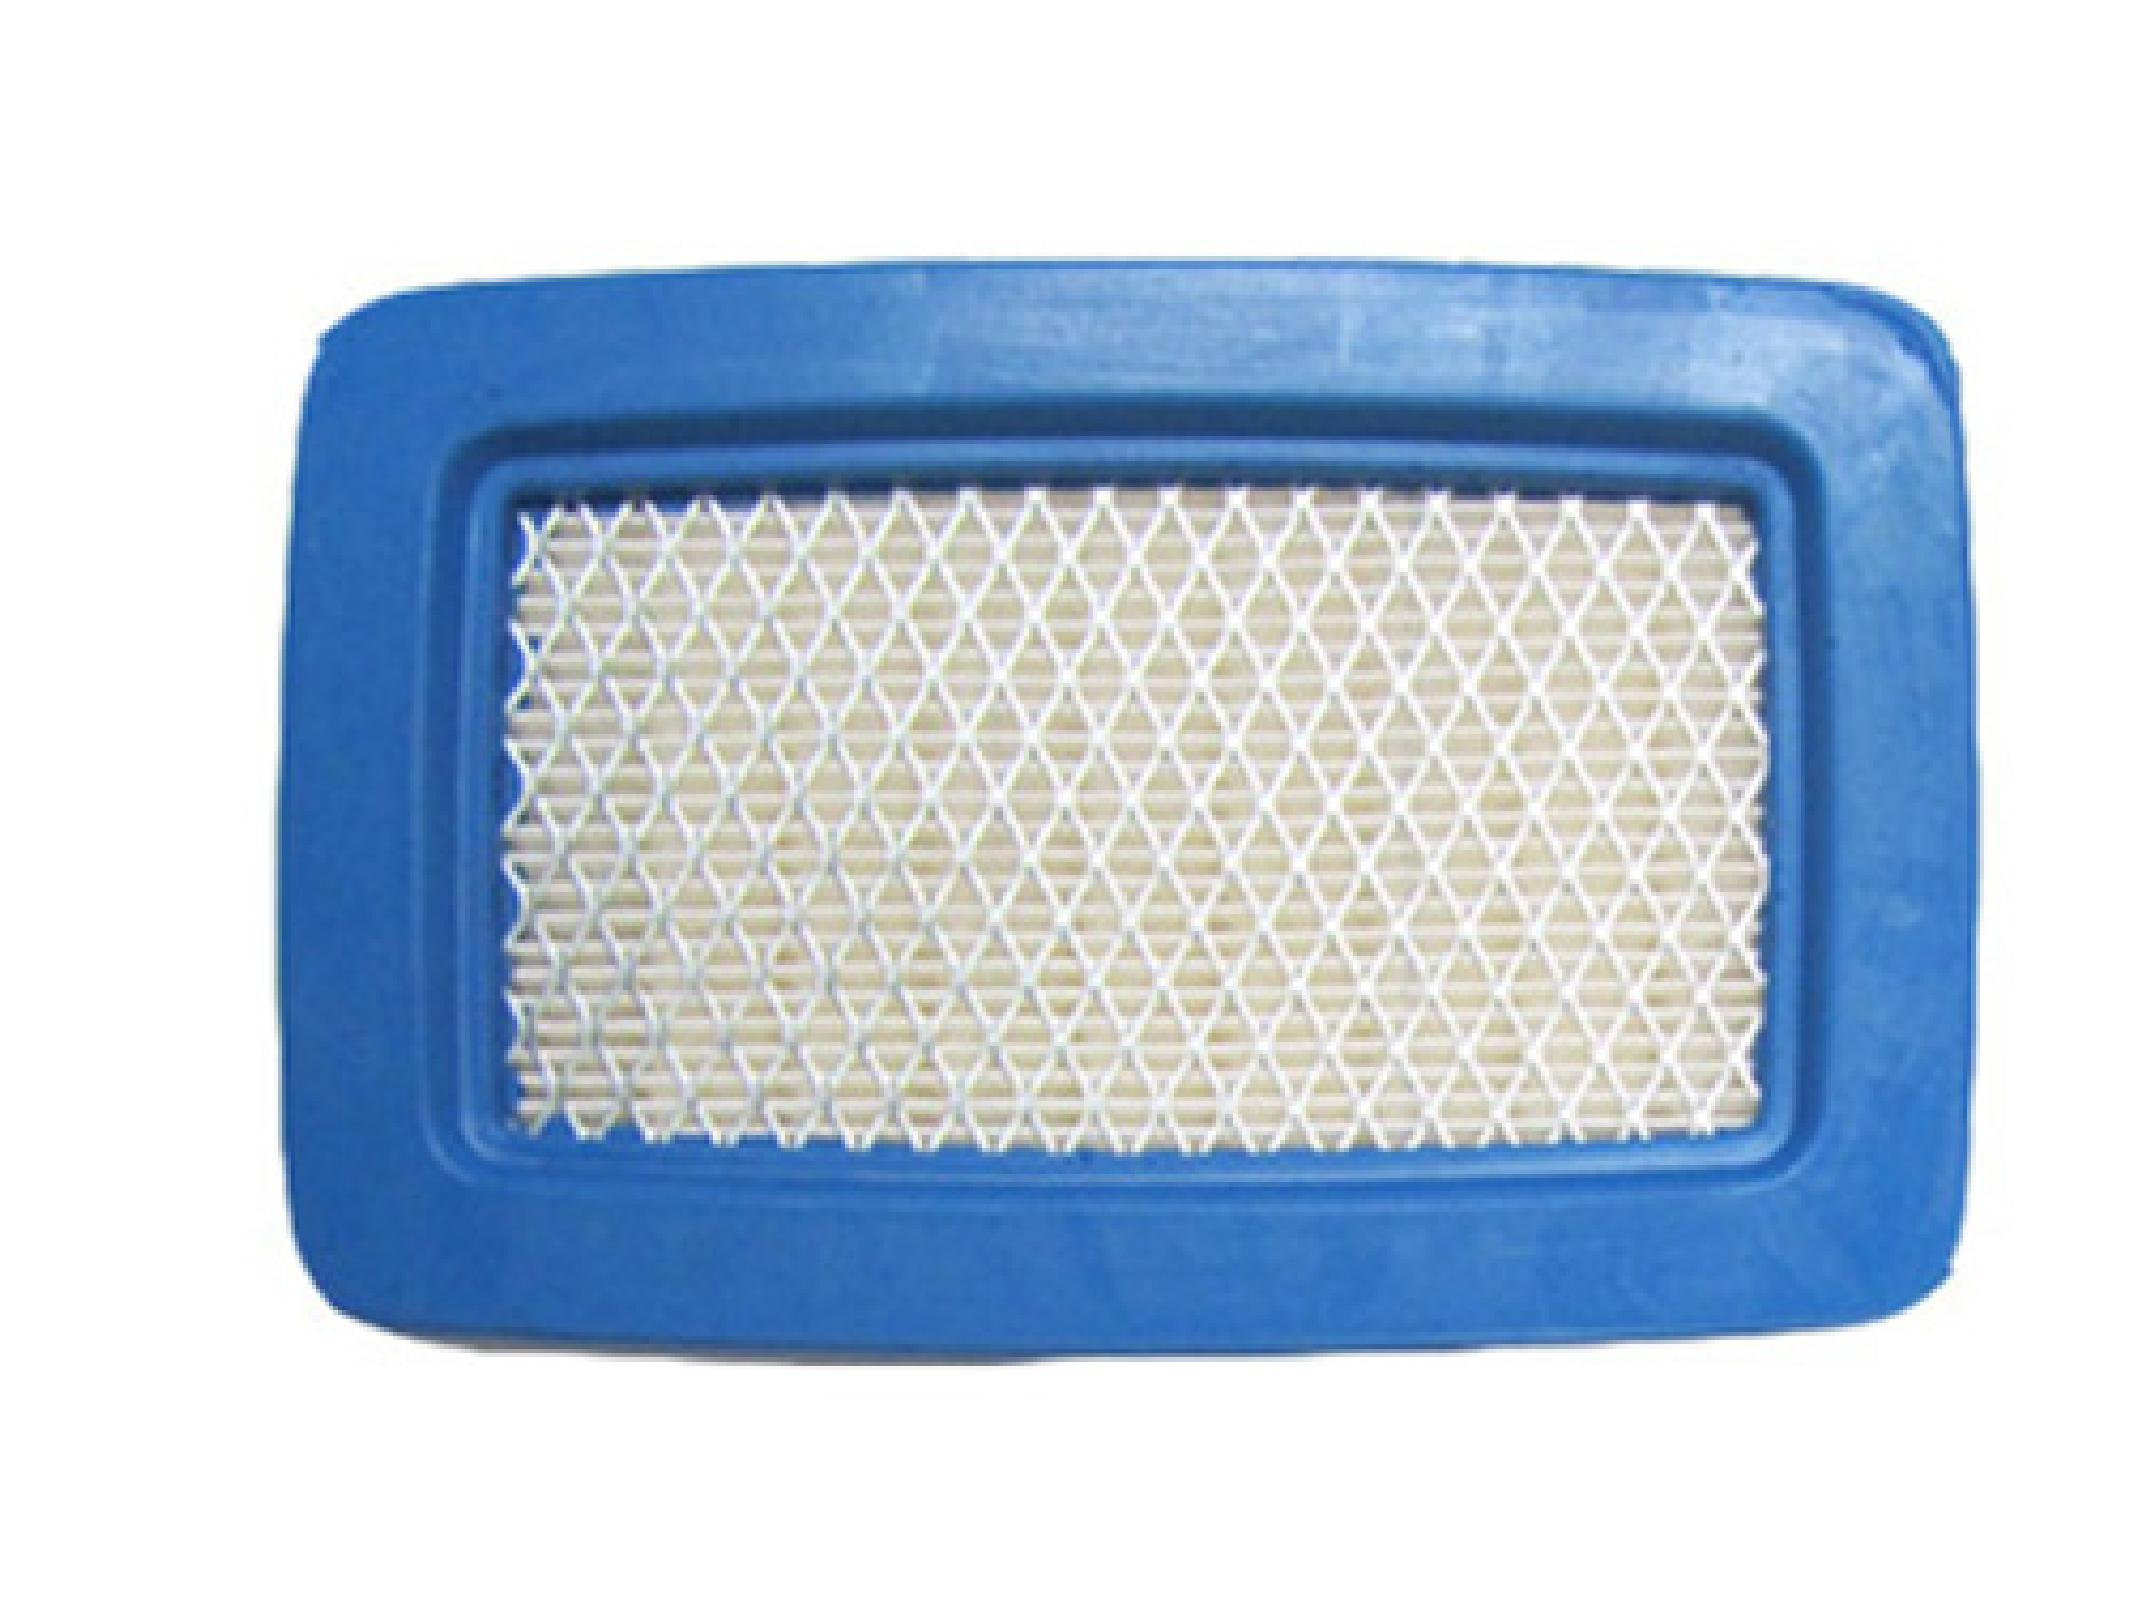 AIR FILTER FITS ECHO PB770H PB770T BLOWERS A226000410